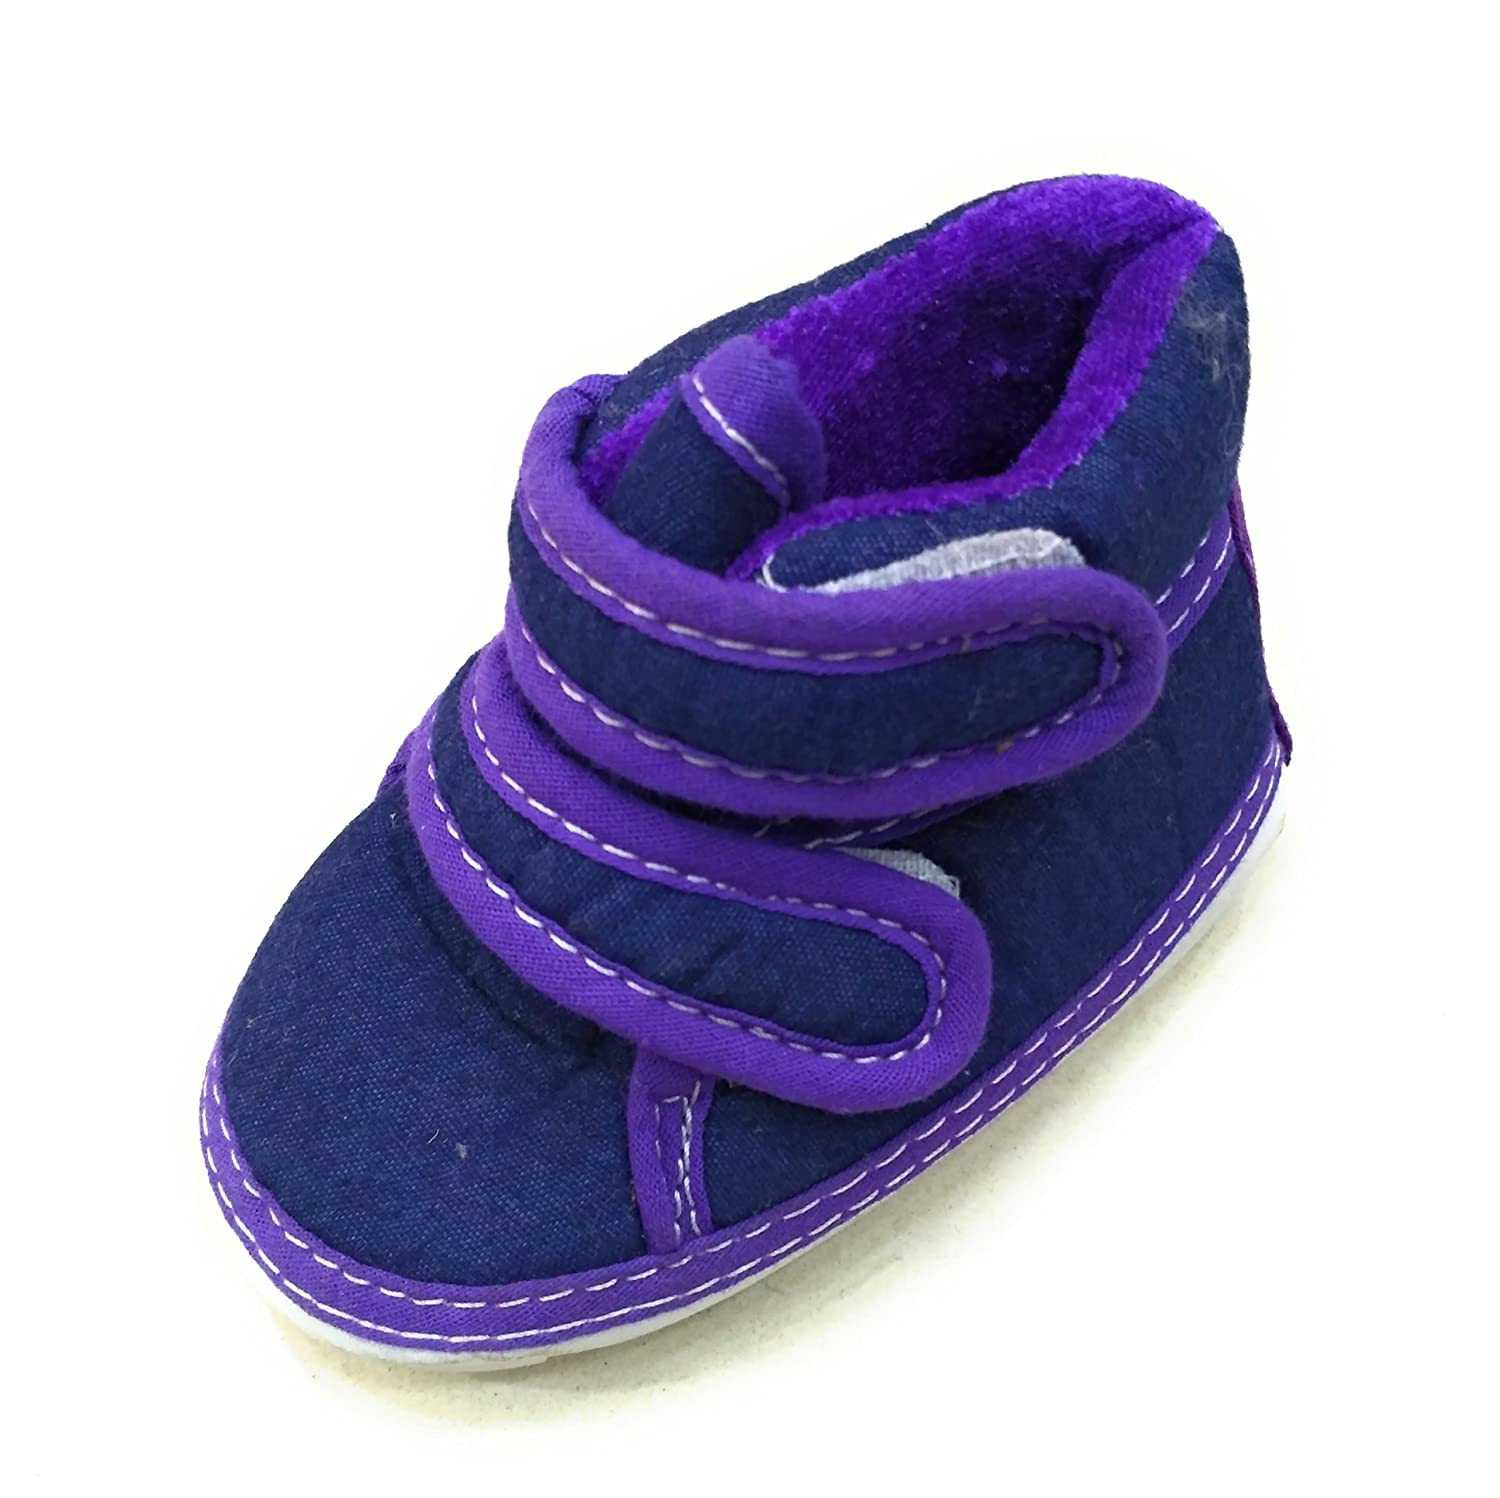 ANCHOR Chu Chu Purple Shoes with Double Strap for Baby Boys 18 24